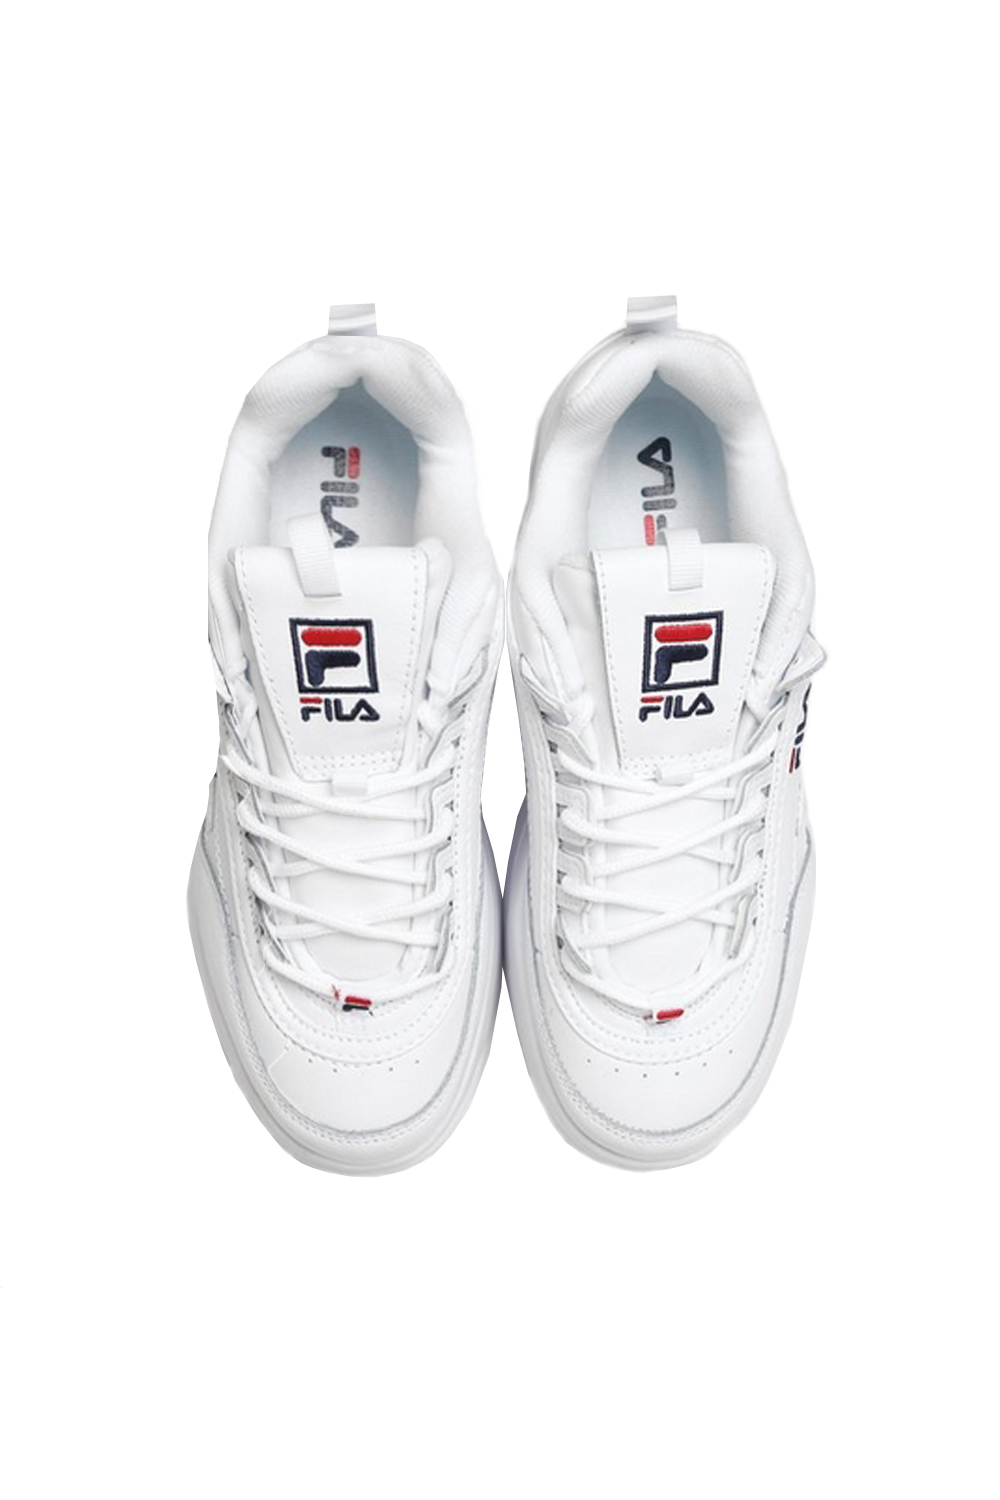 Fila-Disruptor-ll-Wedge-Womens-White-Trainers-Casual-Platform-Chunky-Heel-Shoes thumbnail 4